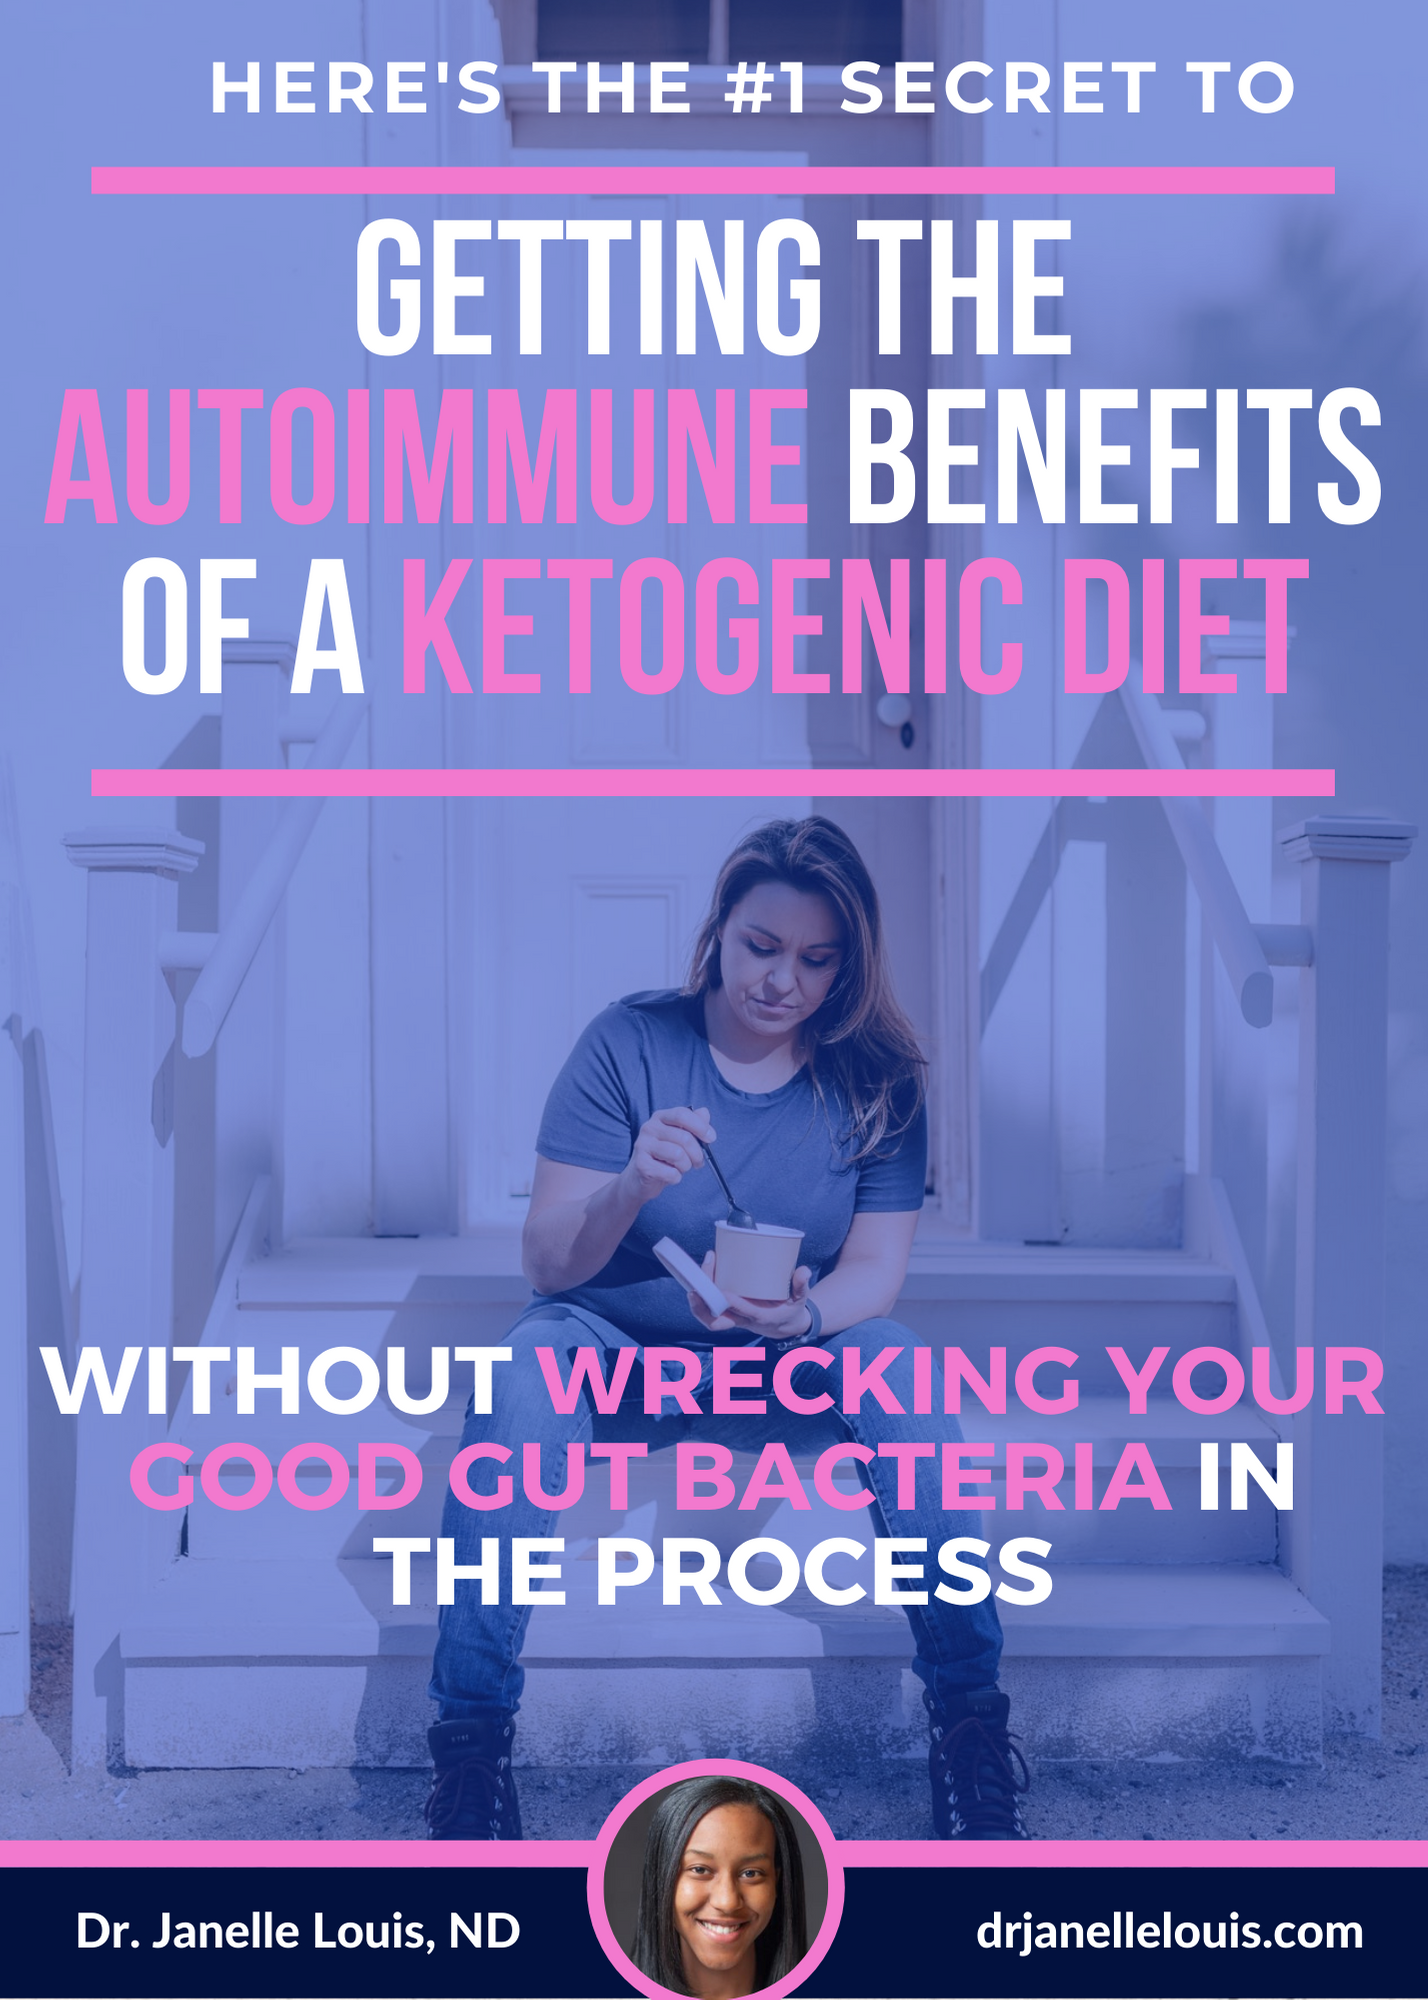 Article highlighting the risks and benefits of a ketogenic diet for autoimmune disease and what to do instead